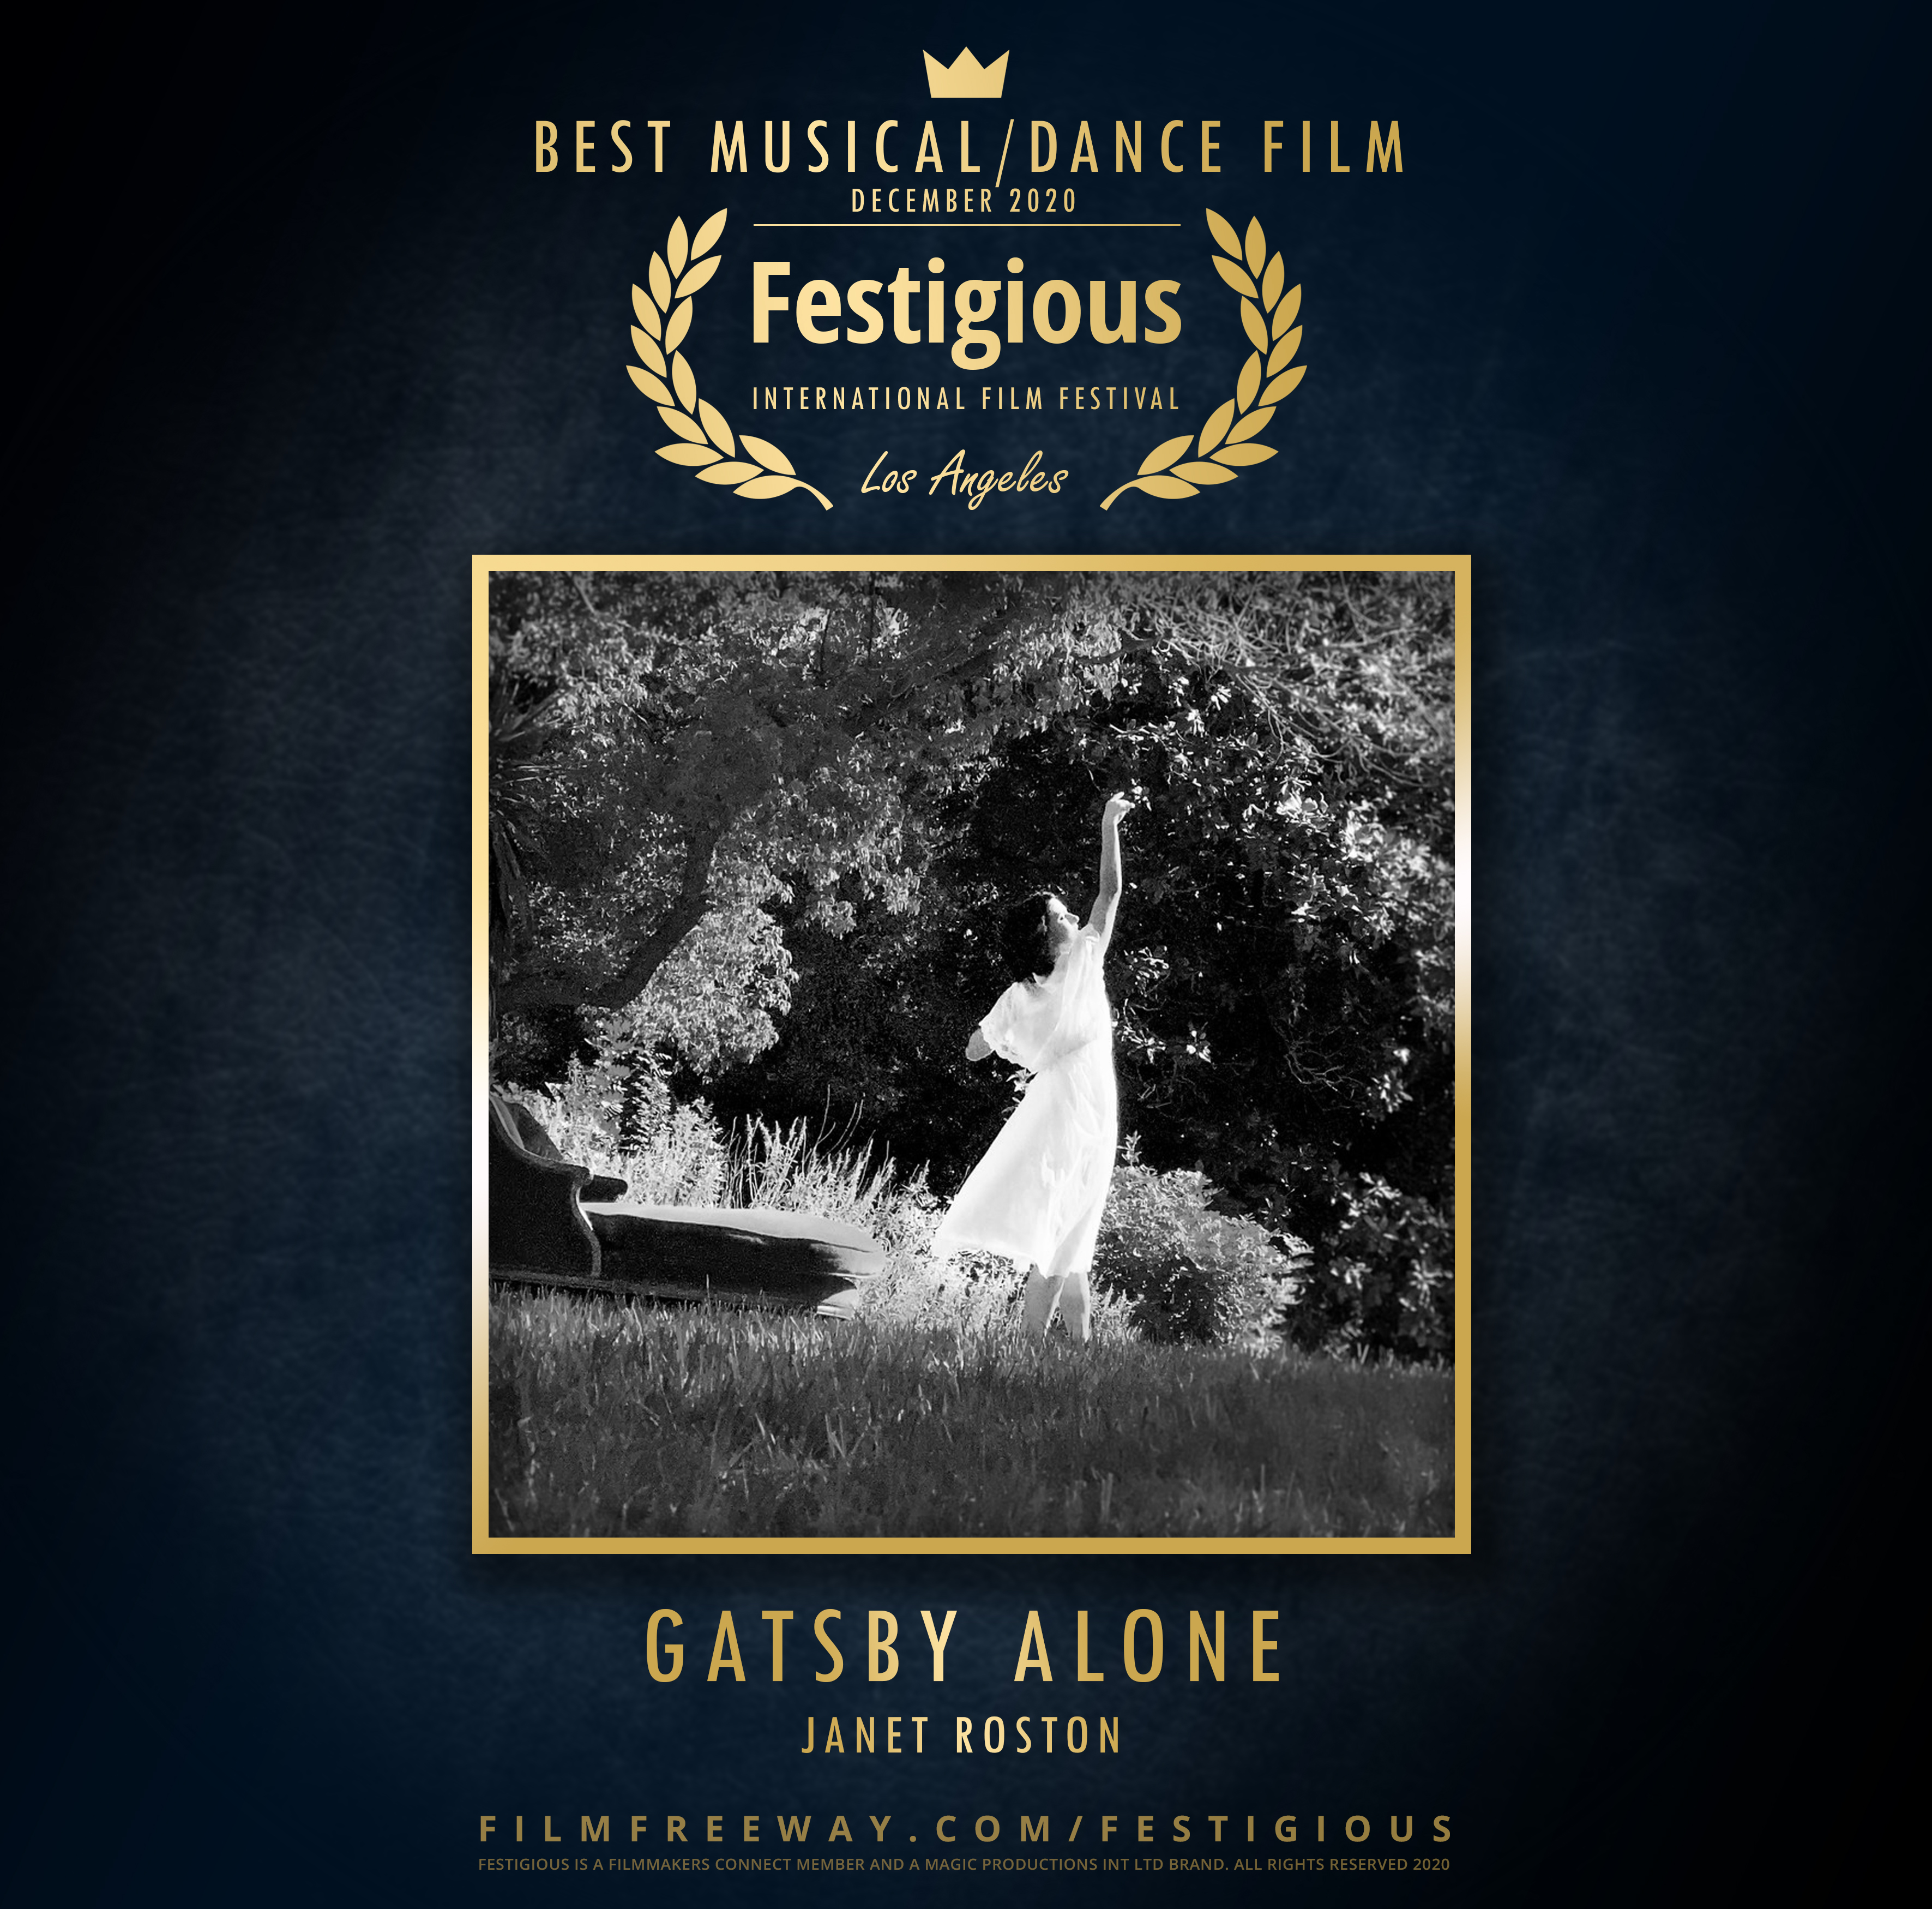 Gatsby Alone design